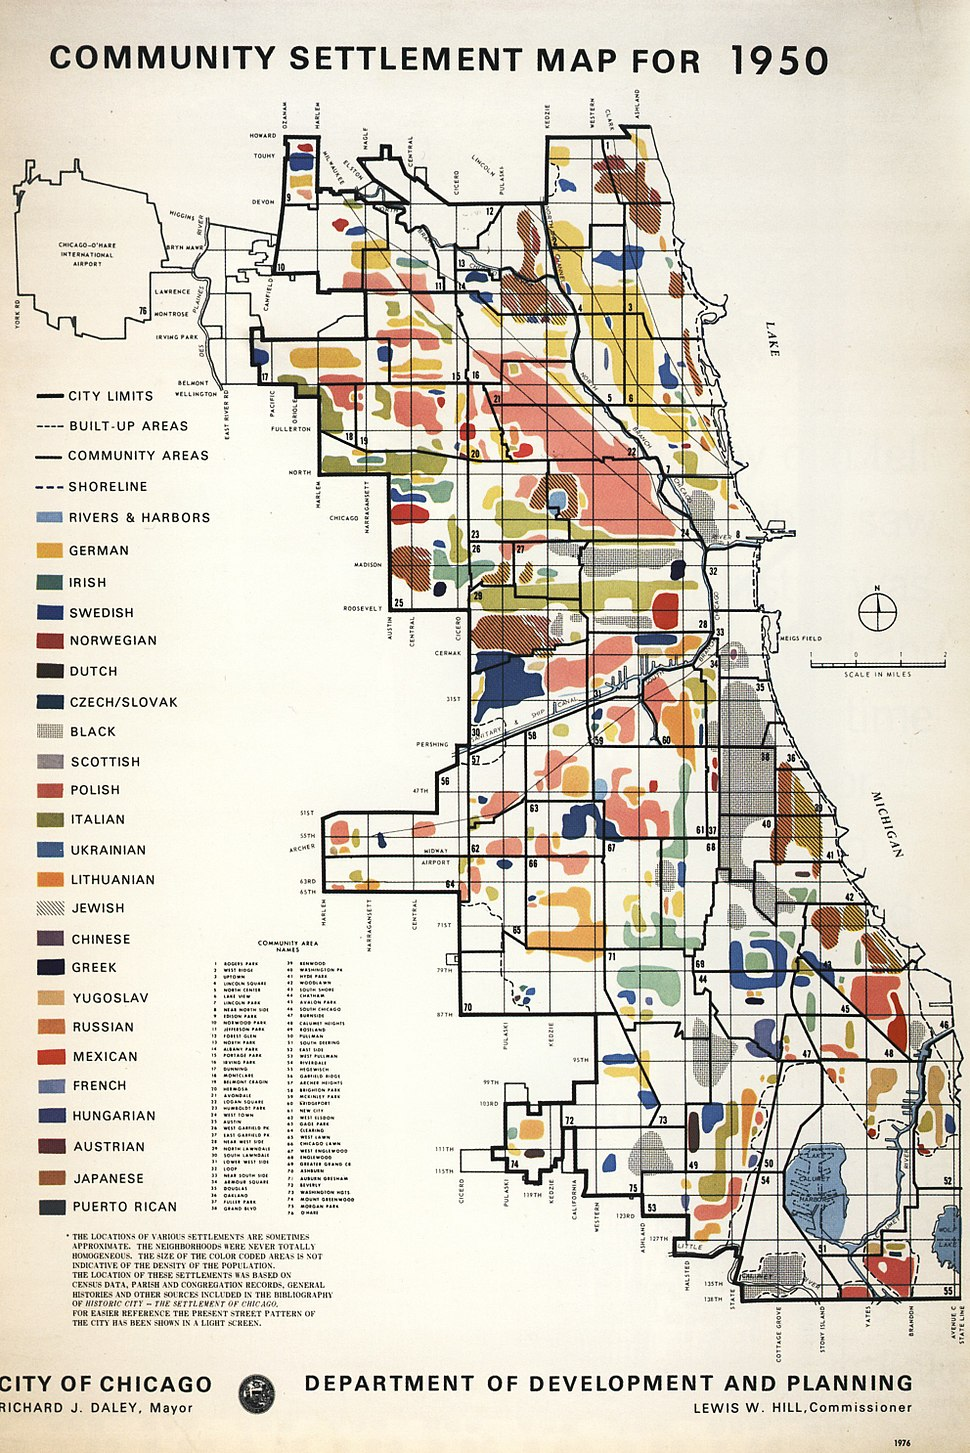 Chicago Demographics in 1950 Map